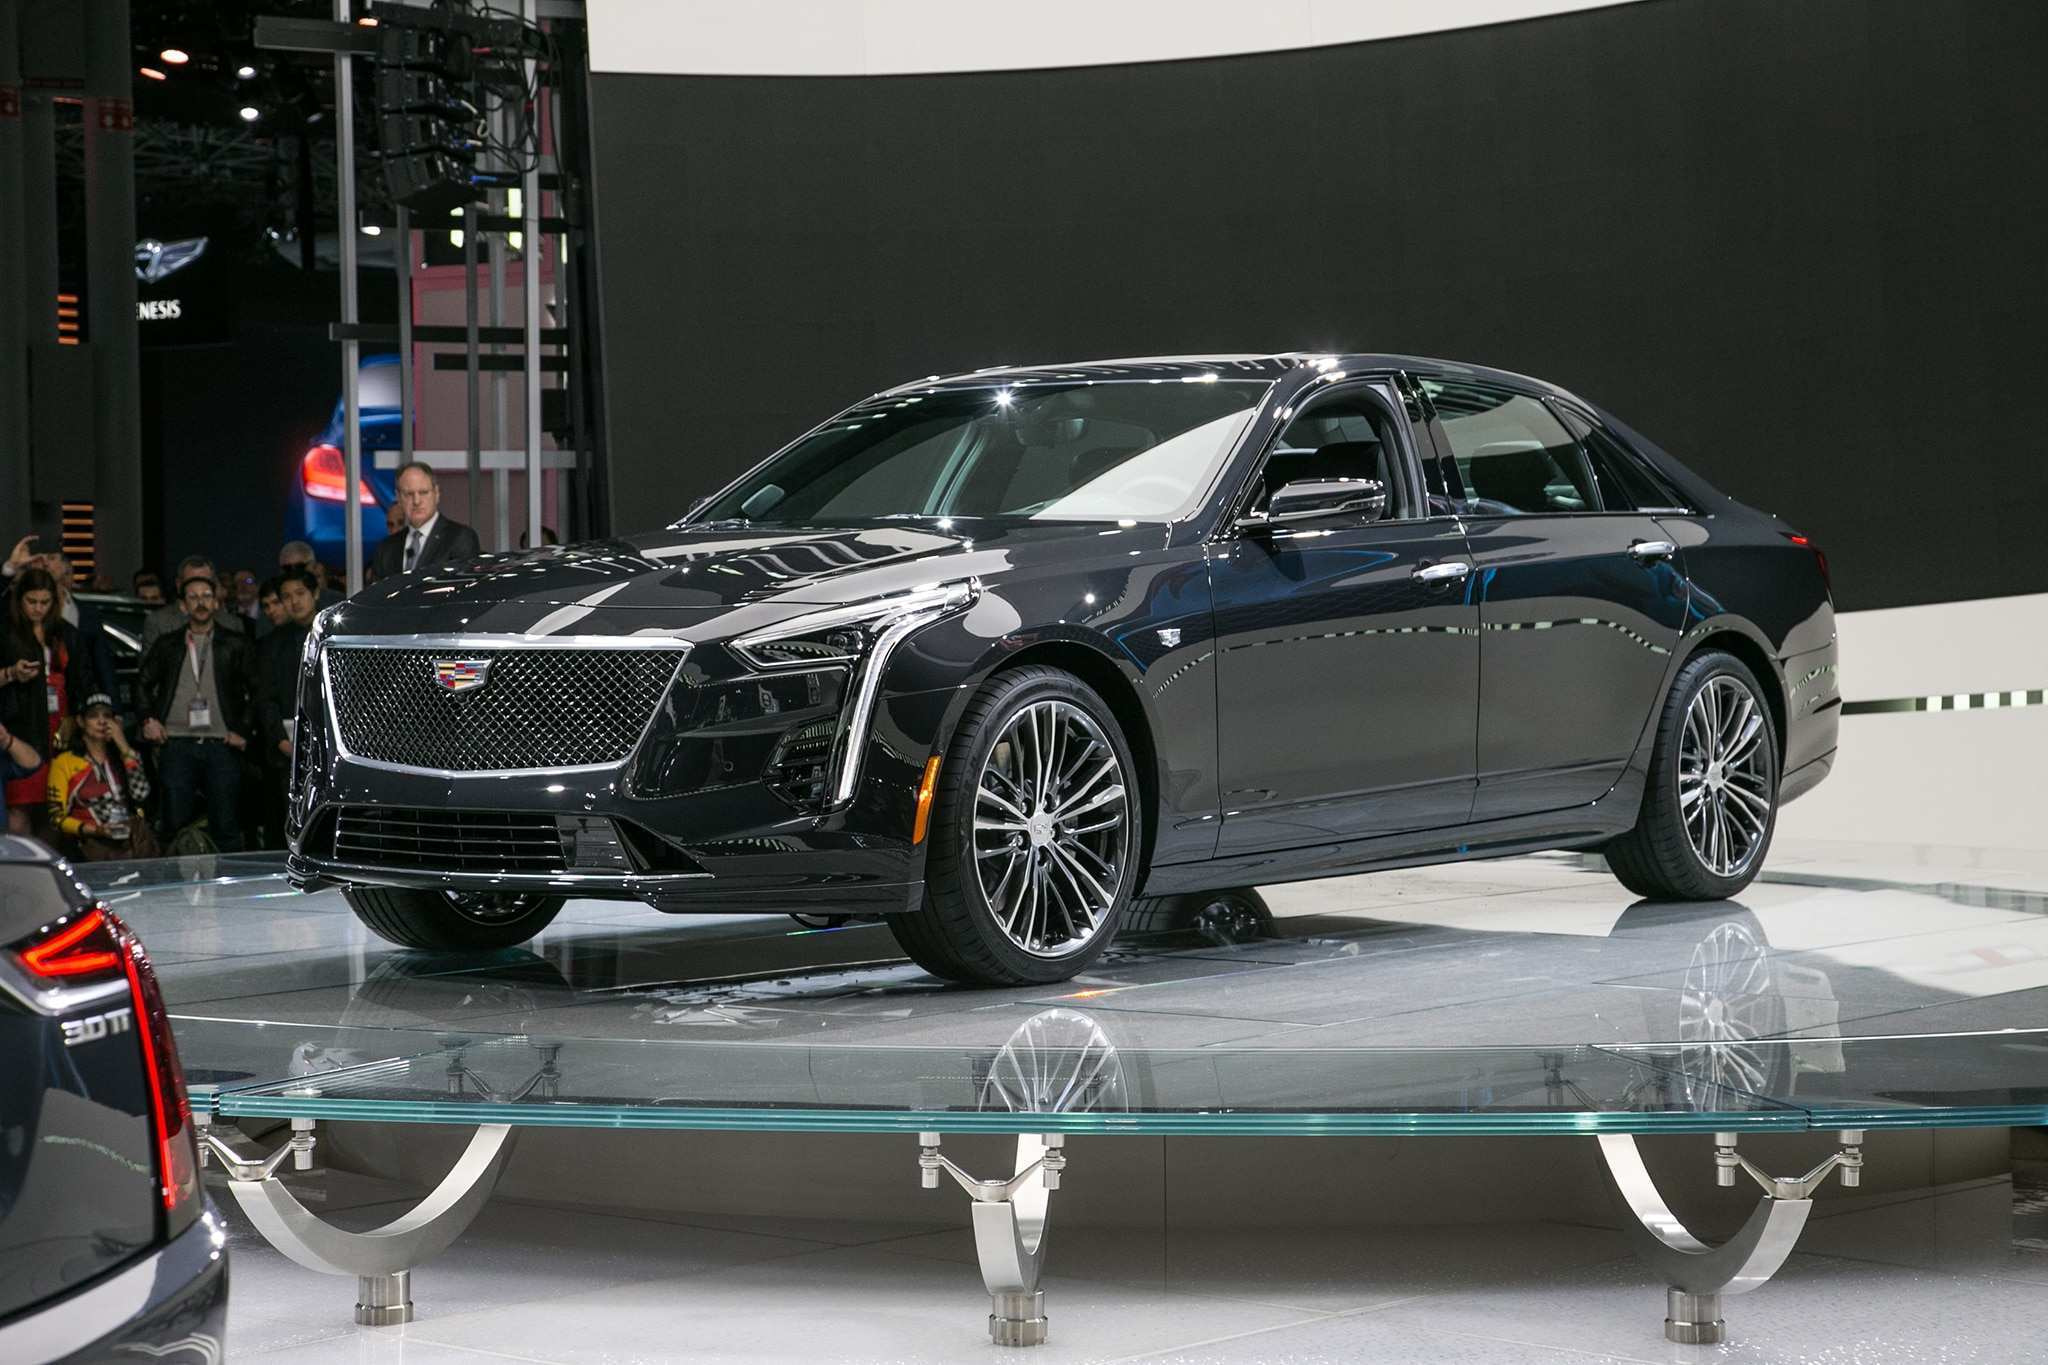 41 New 2019 Cadillac Sedan Speed Test for 2019 Cadillac Sedan